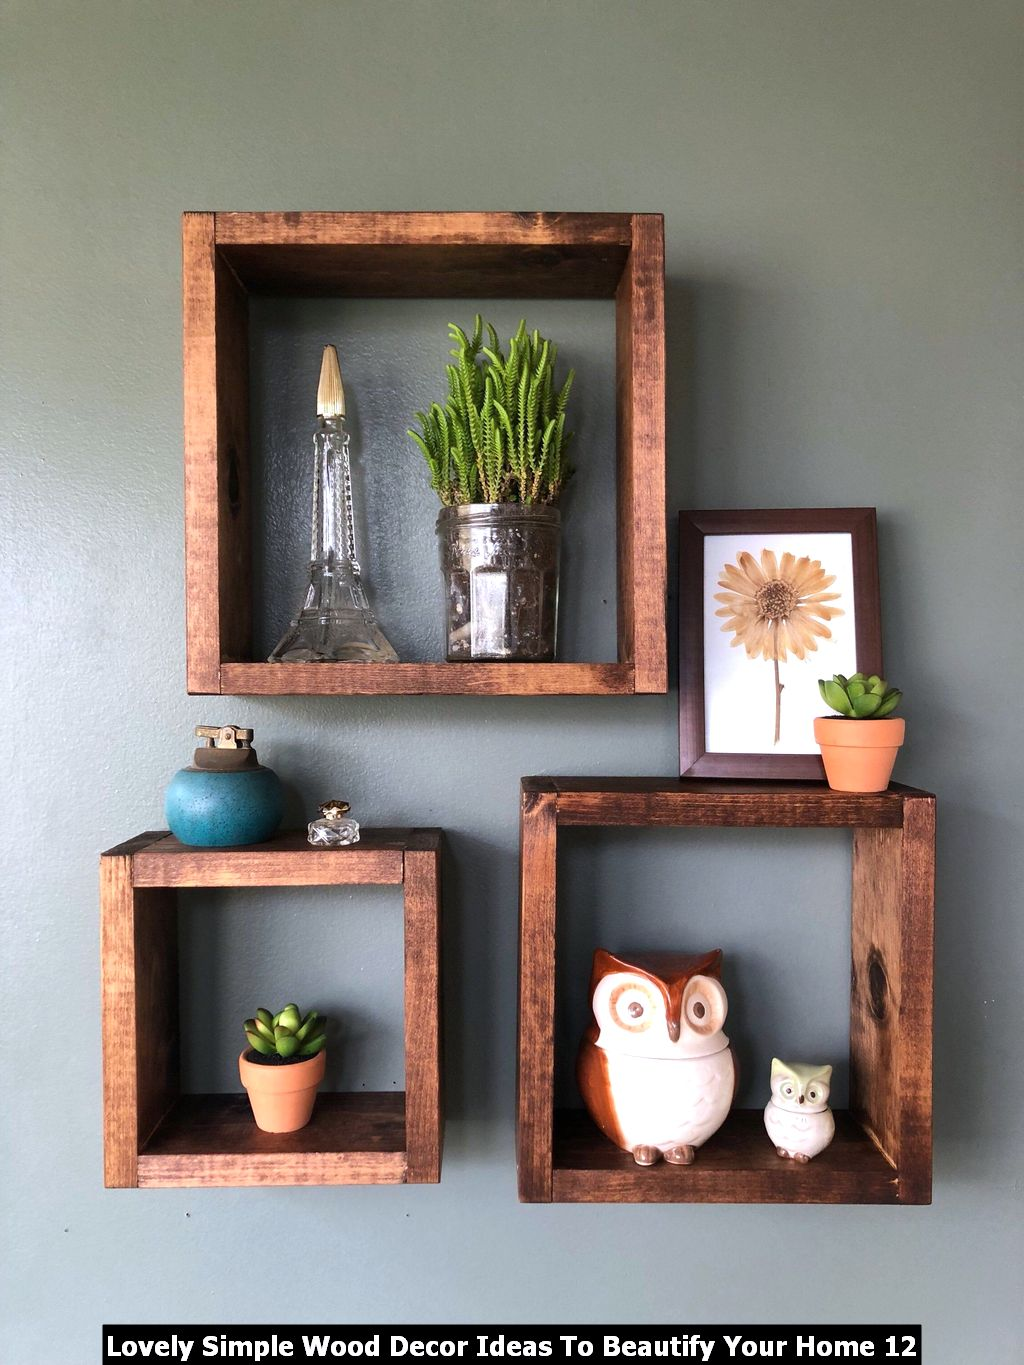 Lovely Simple Wood Decor Ideas To Beautify Your Home 12